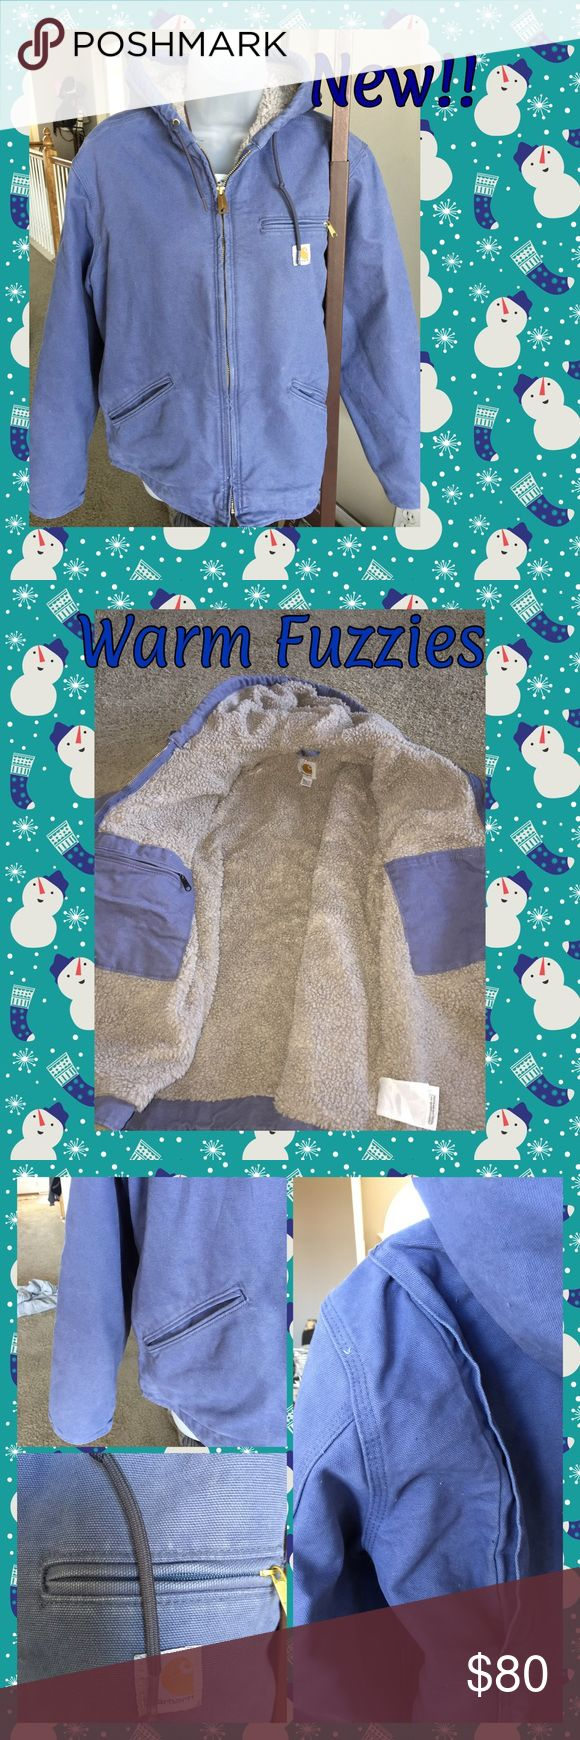 Periwinkle Blue Ladies Carhartt Coat If you're familiar with Carhartt Coats, you know they are the warmest coats in work or casual wear. Heavy cotton outer shell and warm tan sheep skin-like materials inside. Perfect Christmas gift for the gal that loves the outdoors but, likes to still keep it a tad feminine. Large hood with zip up front and pockets inside and out💙More details to come. Ask any questions before purchasing that you may have Carhartt Jackets & Coats